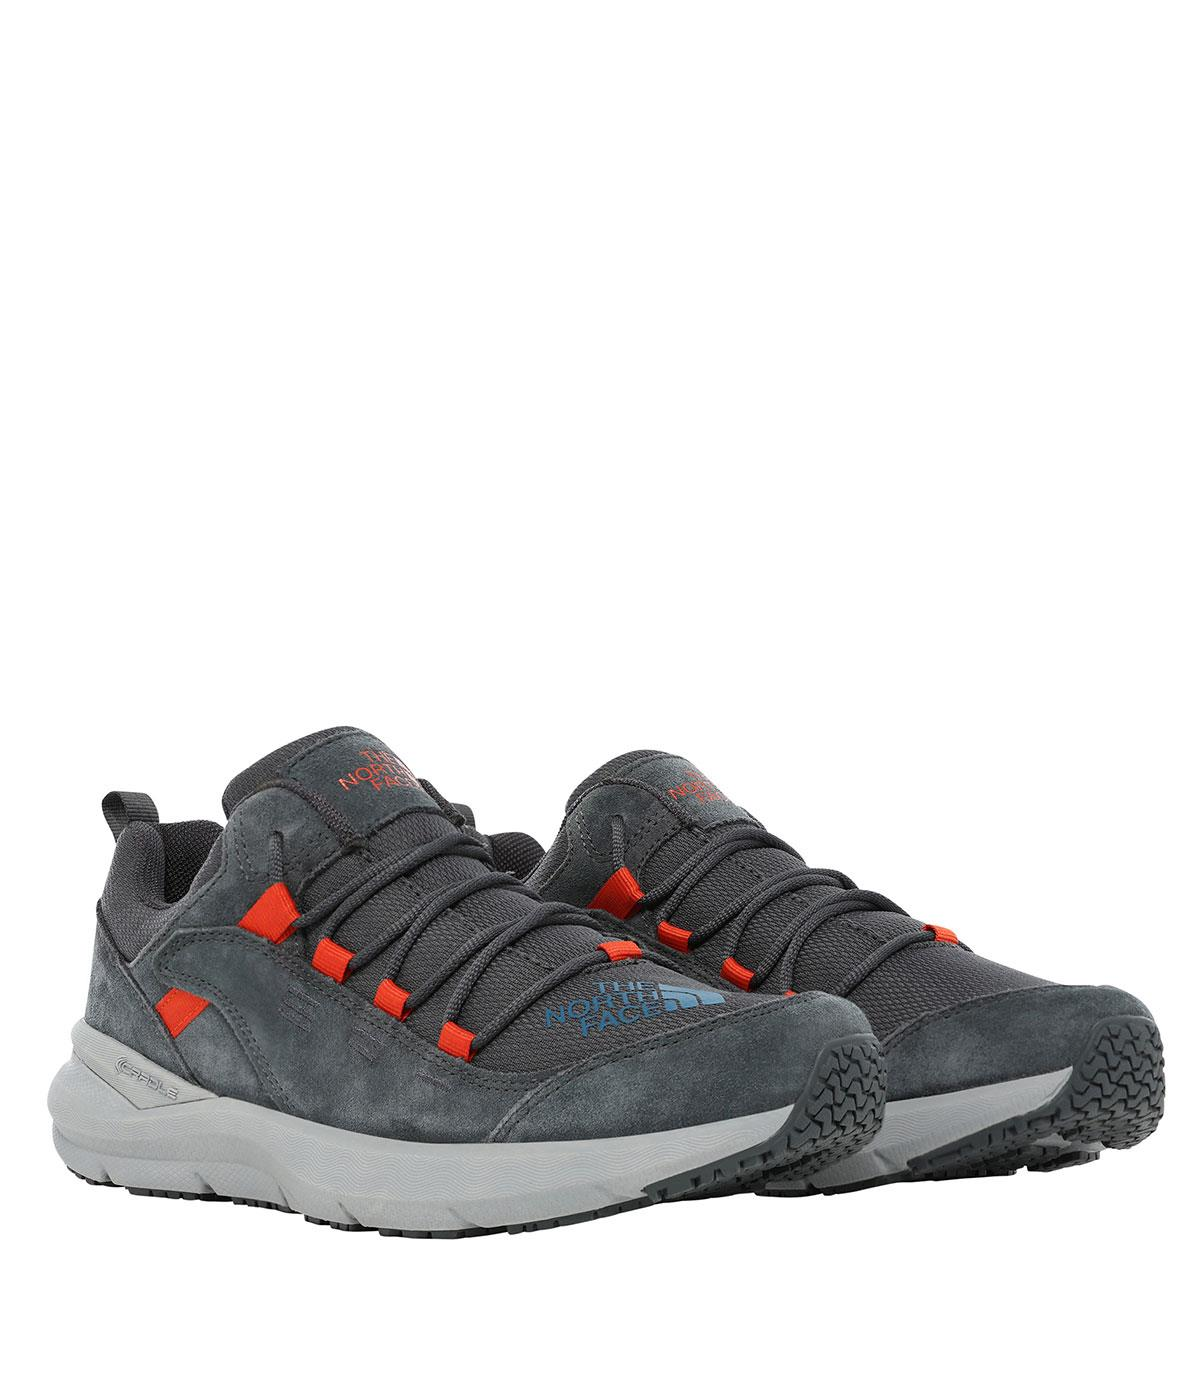 The North Face Erkek  Mountain Sneaker 2 Nf0A3Wz7G3A1 Ayakkabı